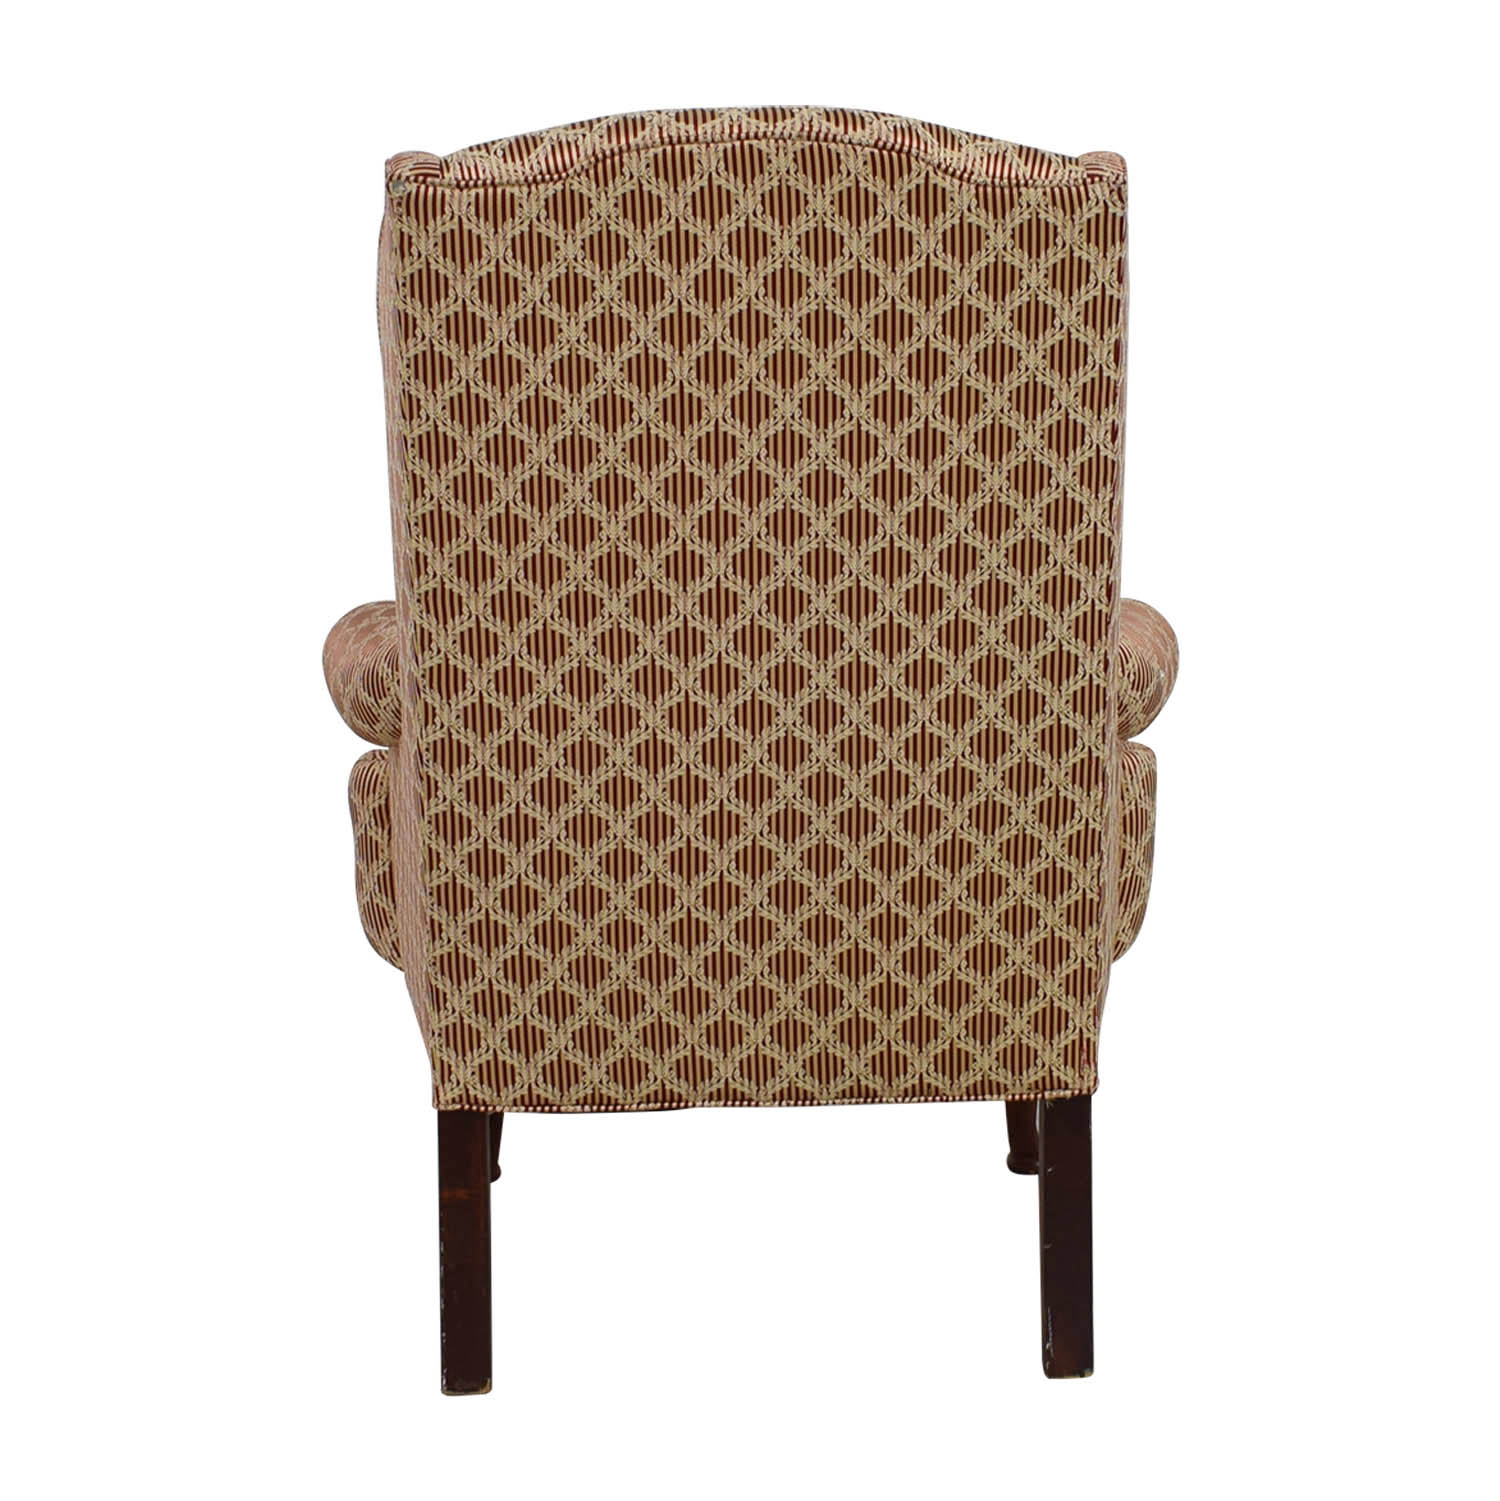 Used Wingback Chairs Chairs Used Chairs For Sale